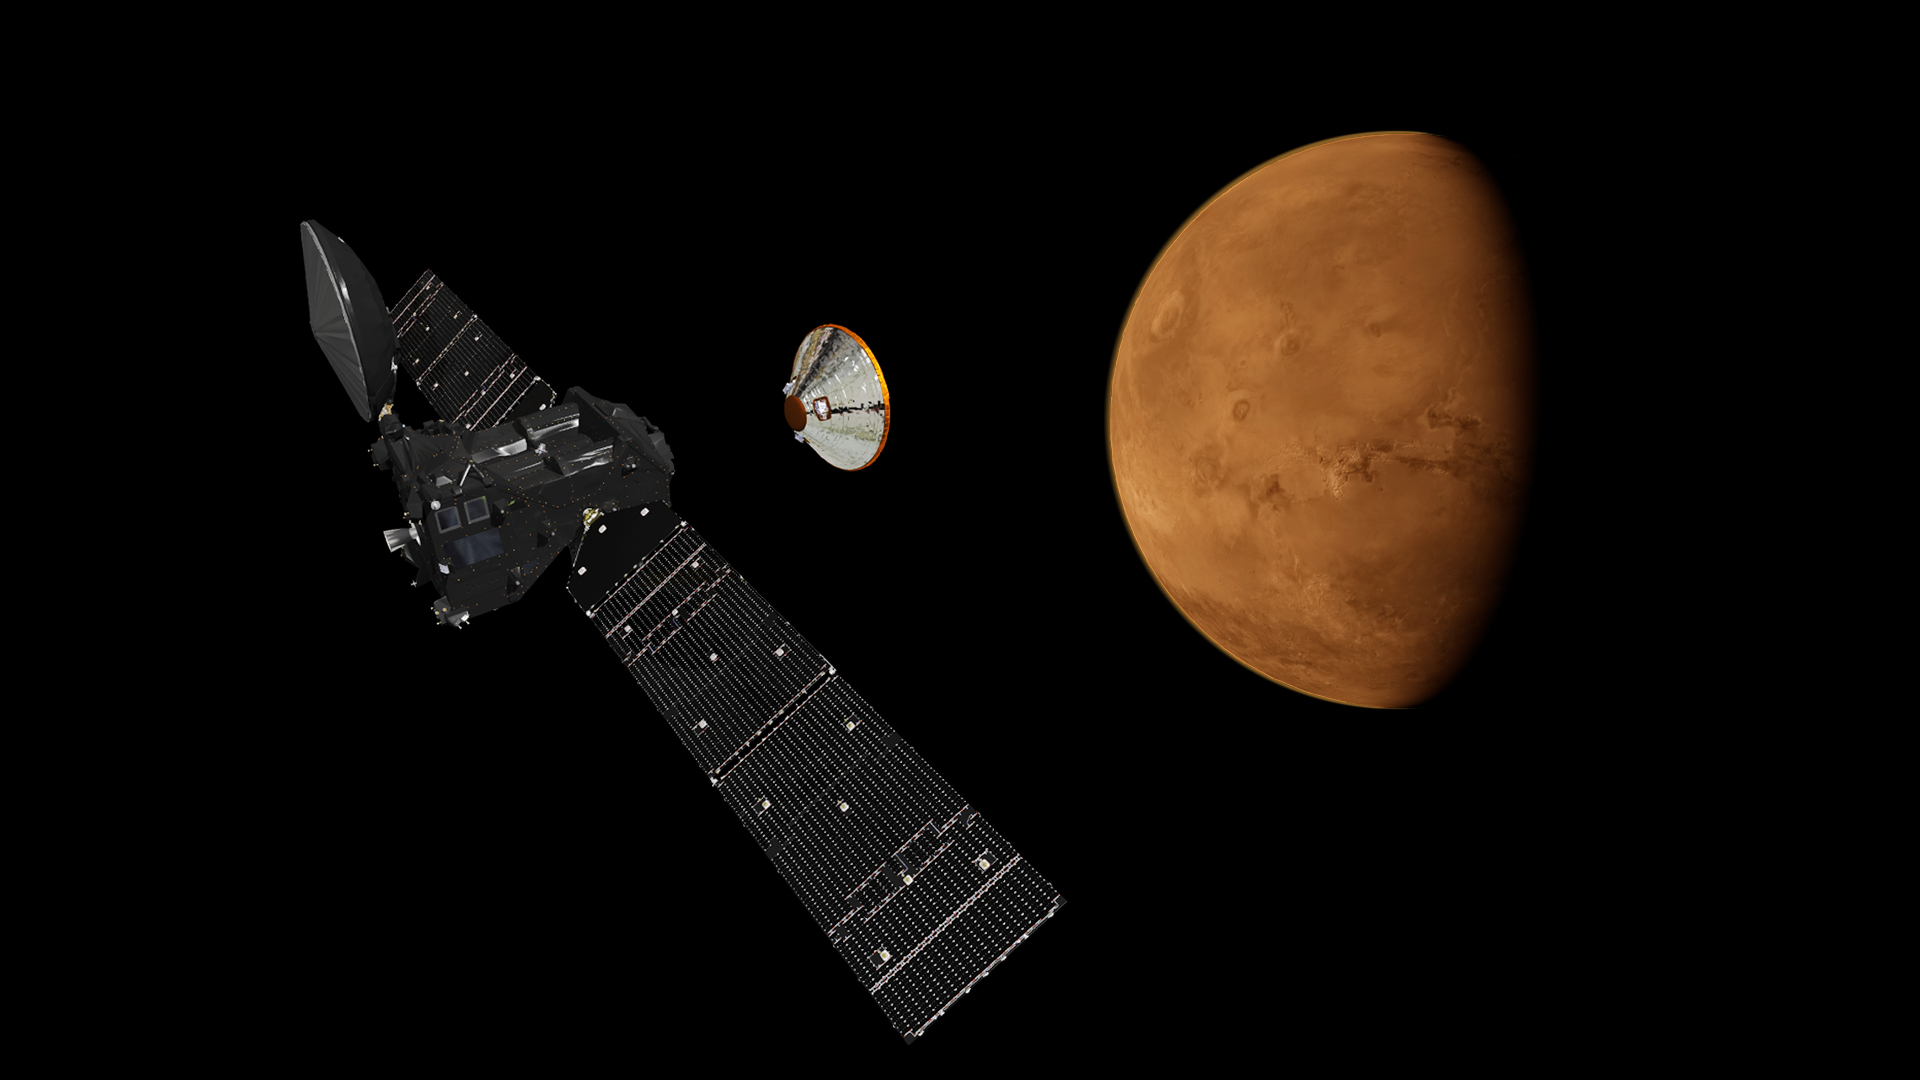 Artist's impression depicting the separation of the ExoMars 2016 entry, descent and landing demonstrator module, named Schiaparelli, from the Trace Gas Orbiter, and heading for Mars. Copyright: ESA/ATG medialab